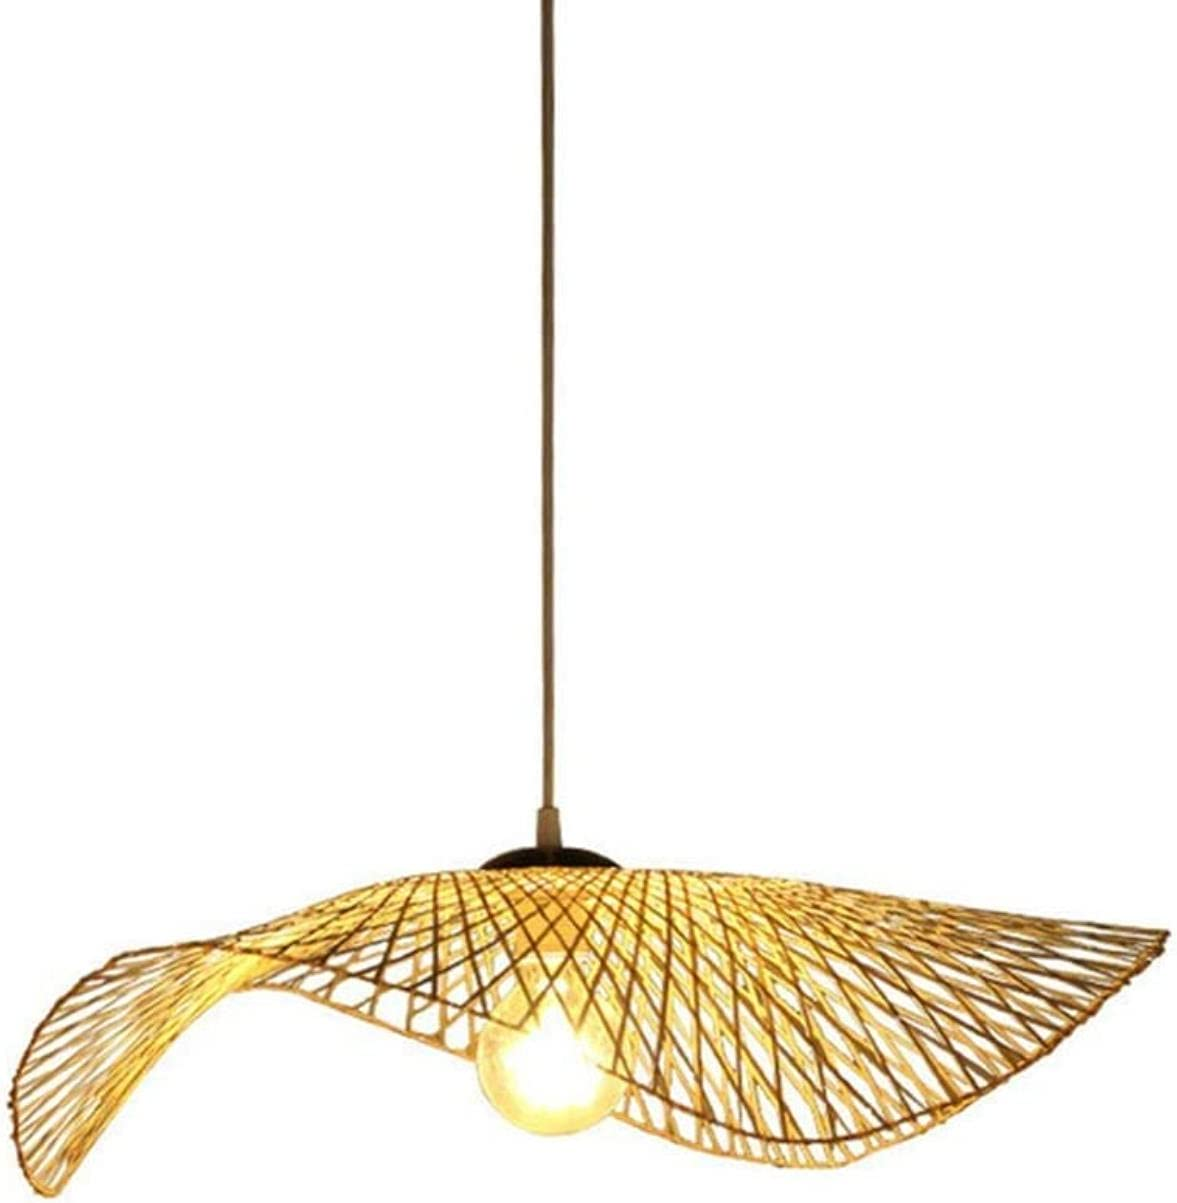 Hanging Lamps Max 80% OFF DIY service Woven Bamboo Vintage Light Natural and